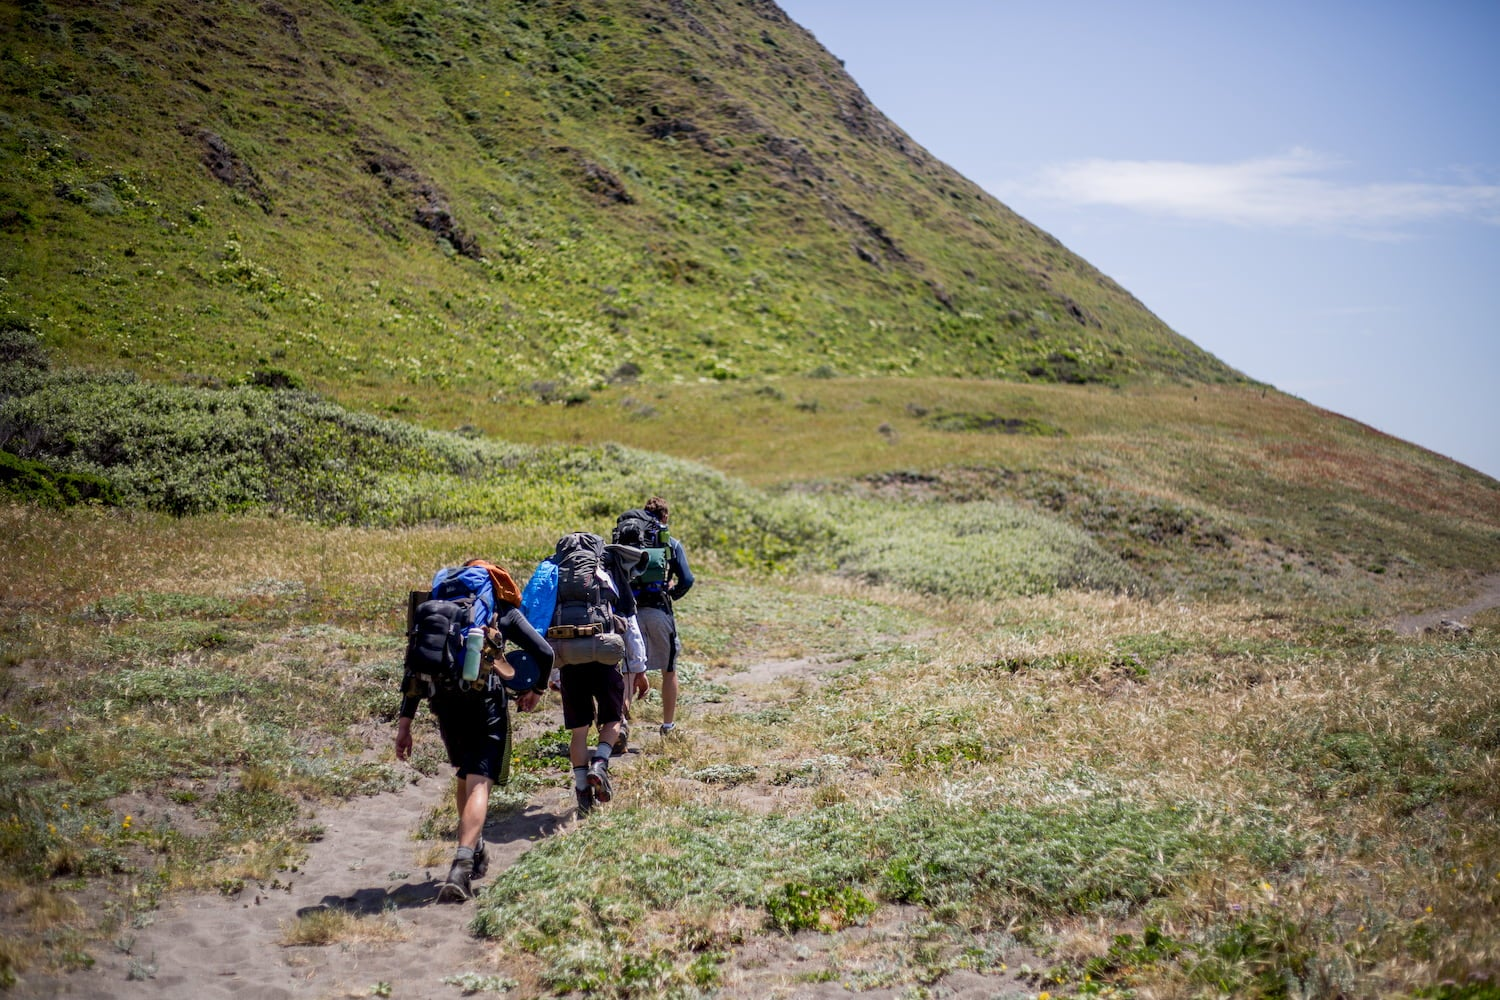 hikers on the lost coast trail